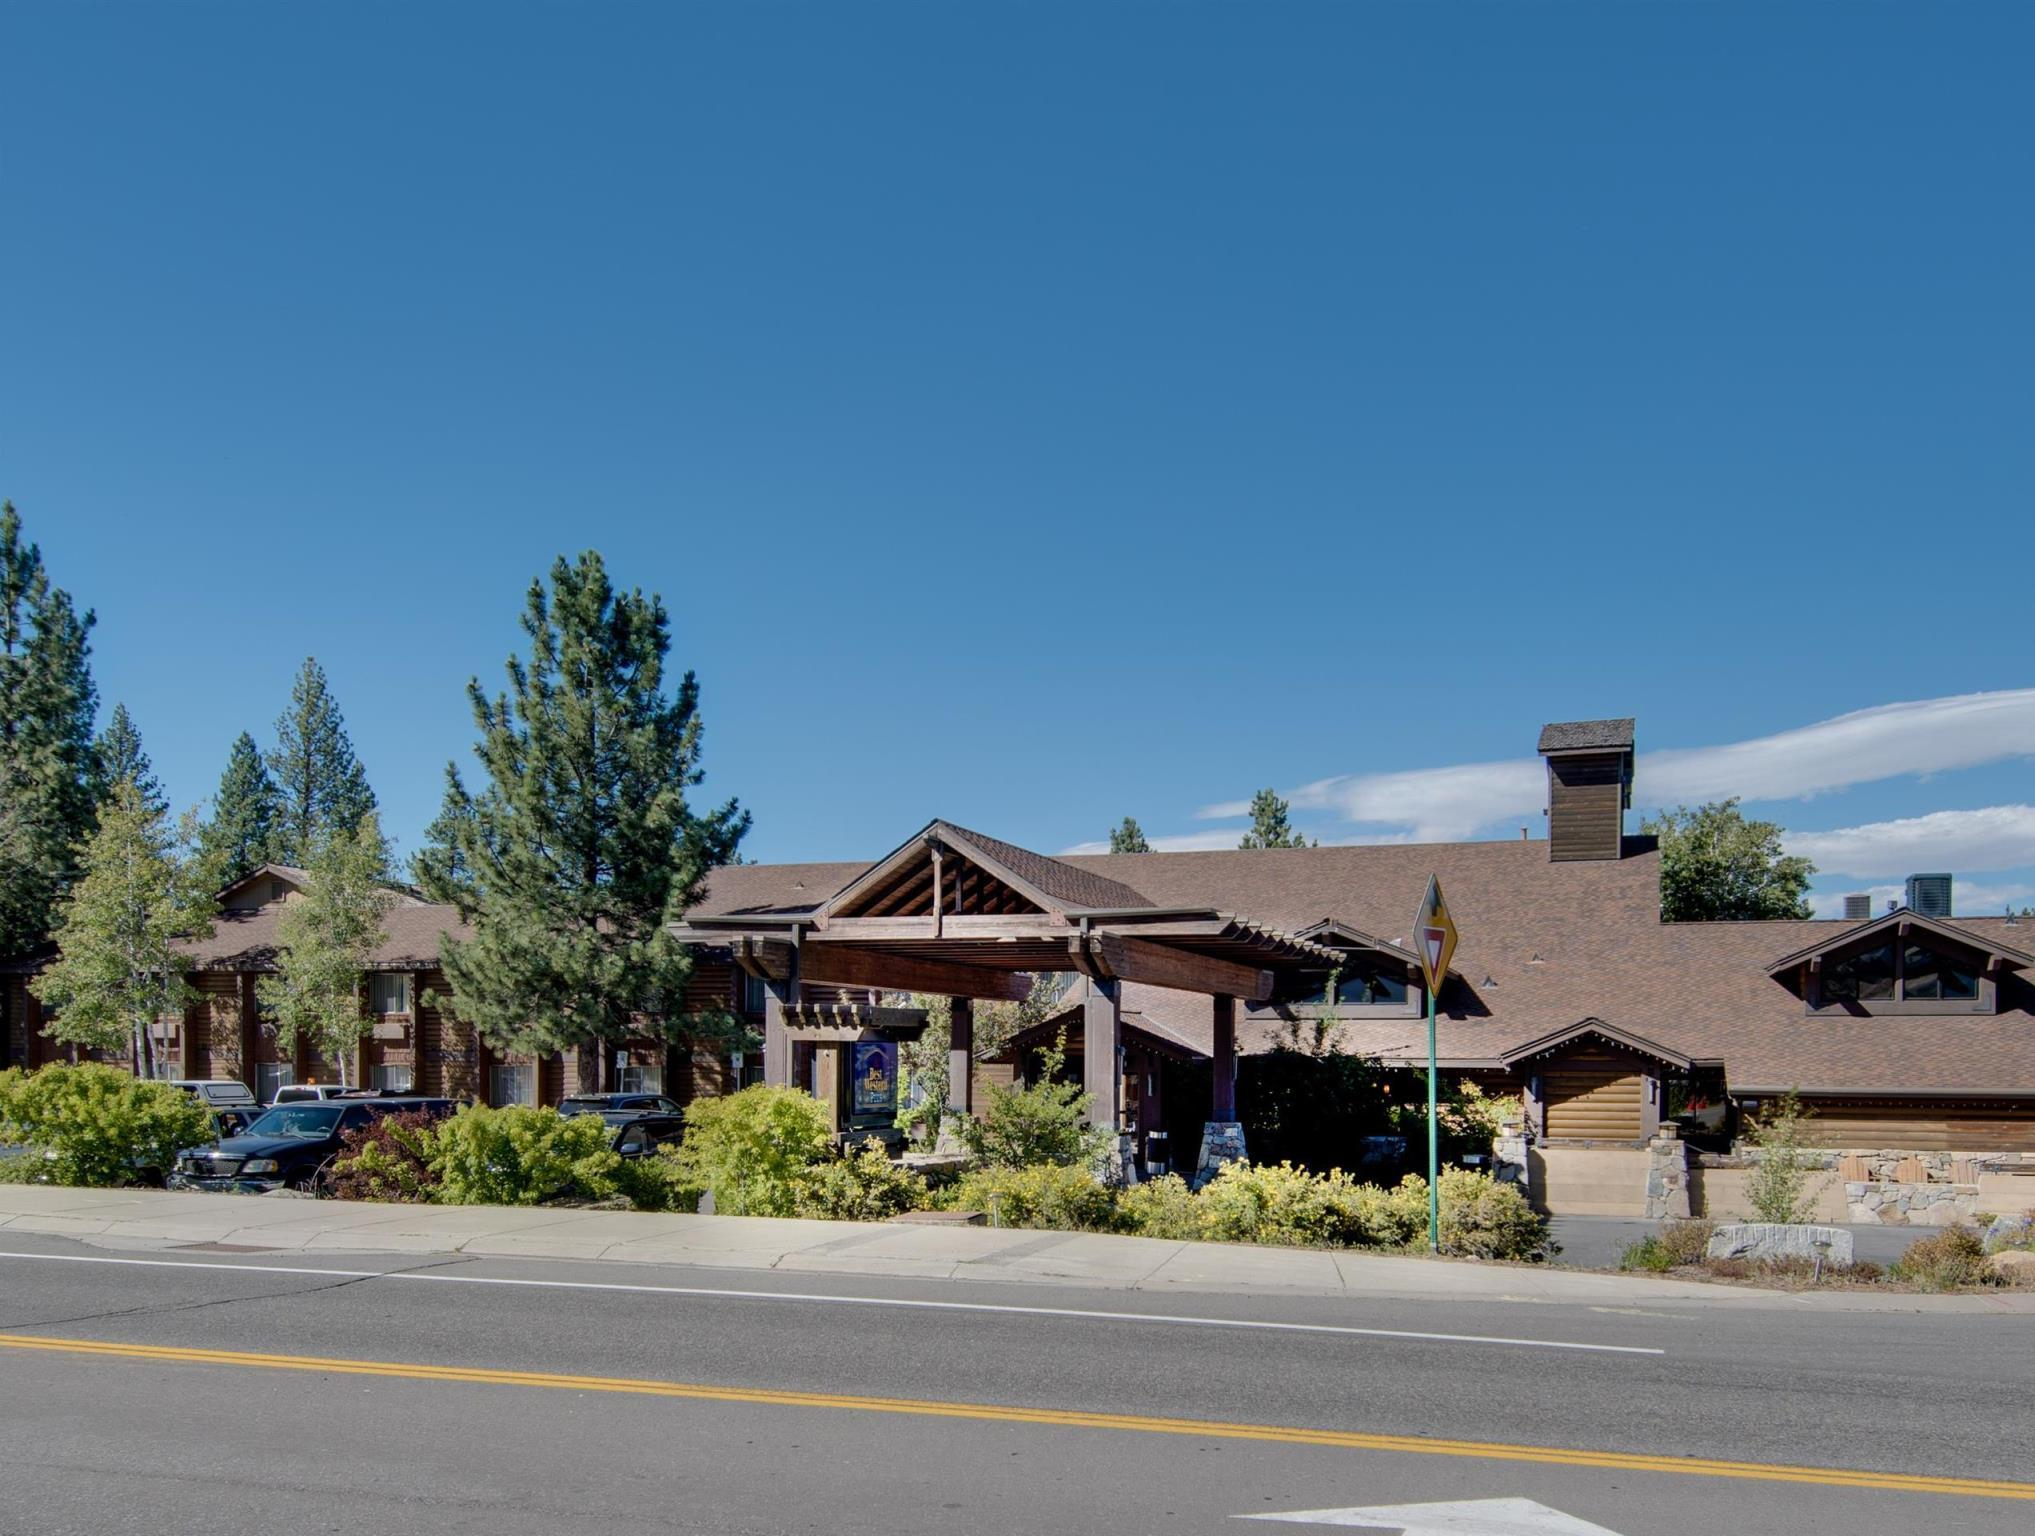 Hotel Review: Best Western Plus Truckee-Tahoe Hotel – Photos, Prices and Deals